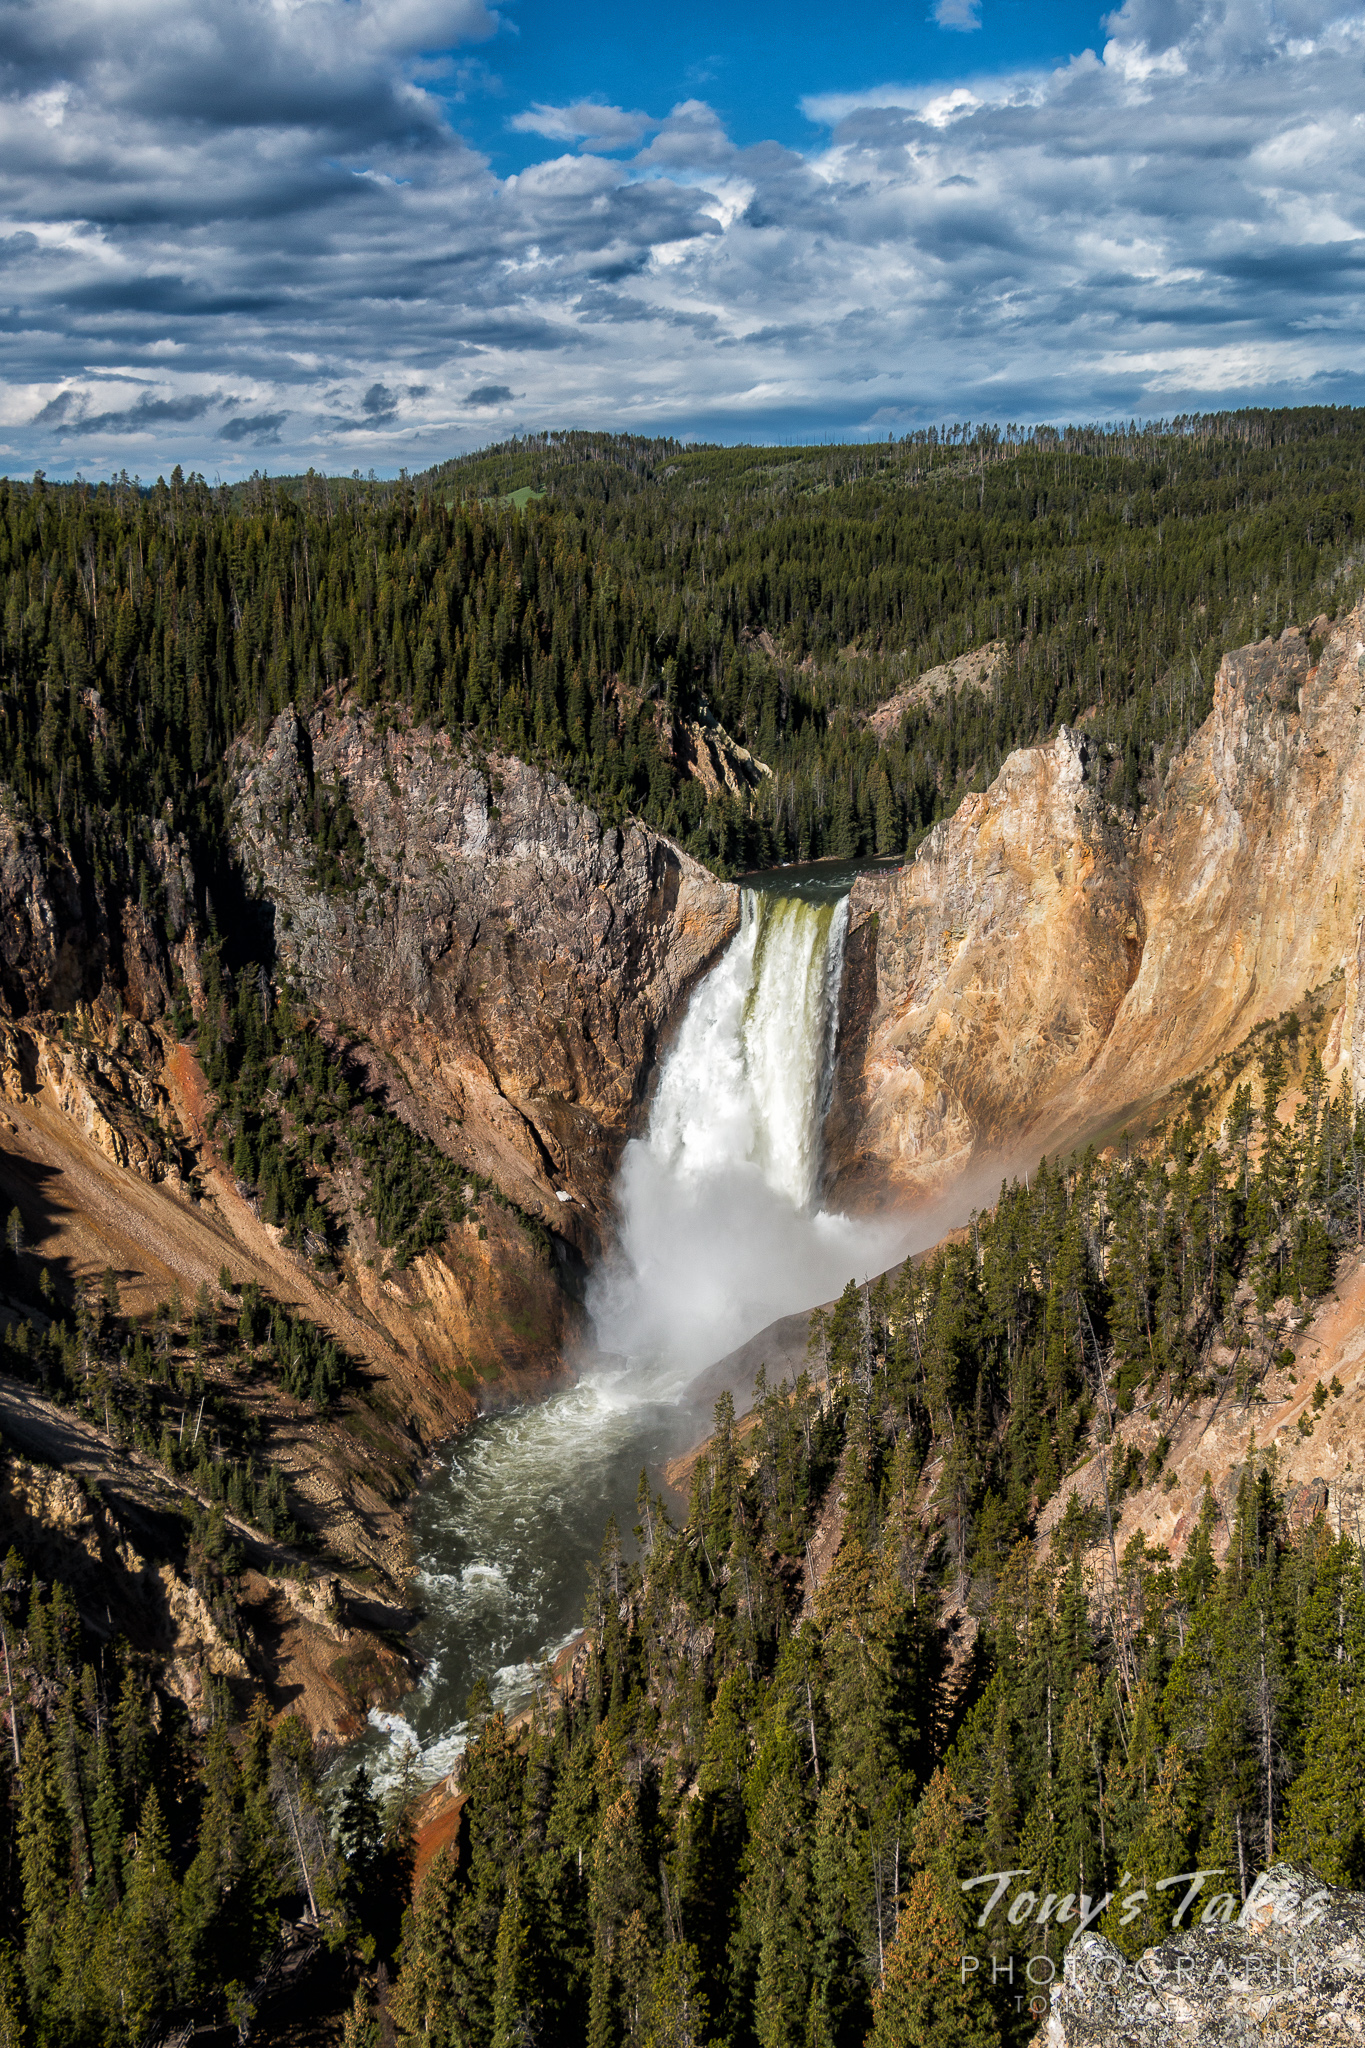 Happy birthday to the always amazing Yellowstone National Park